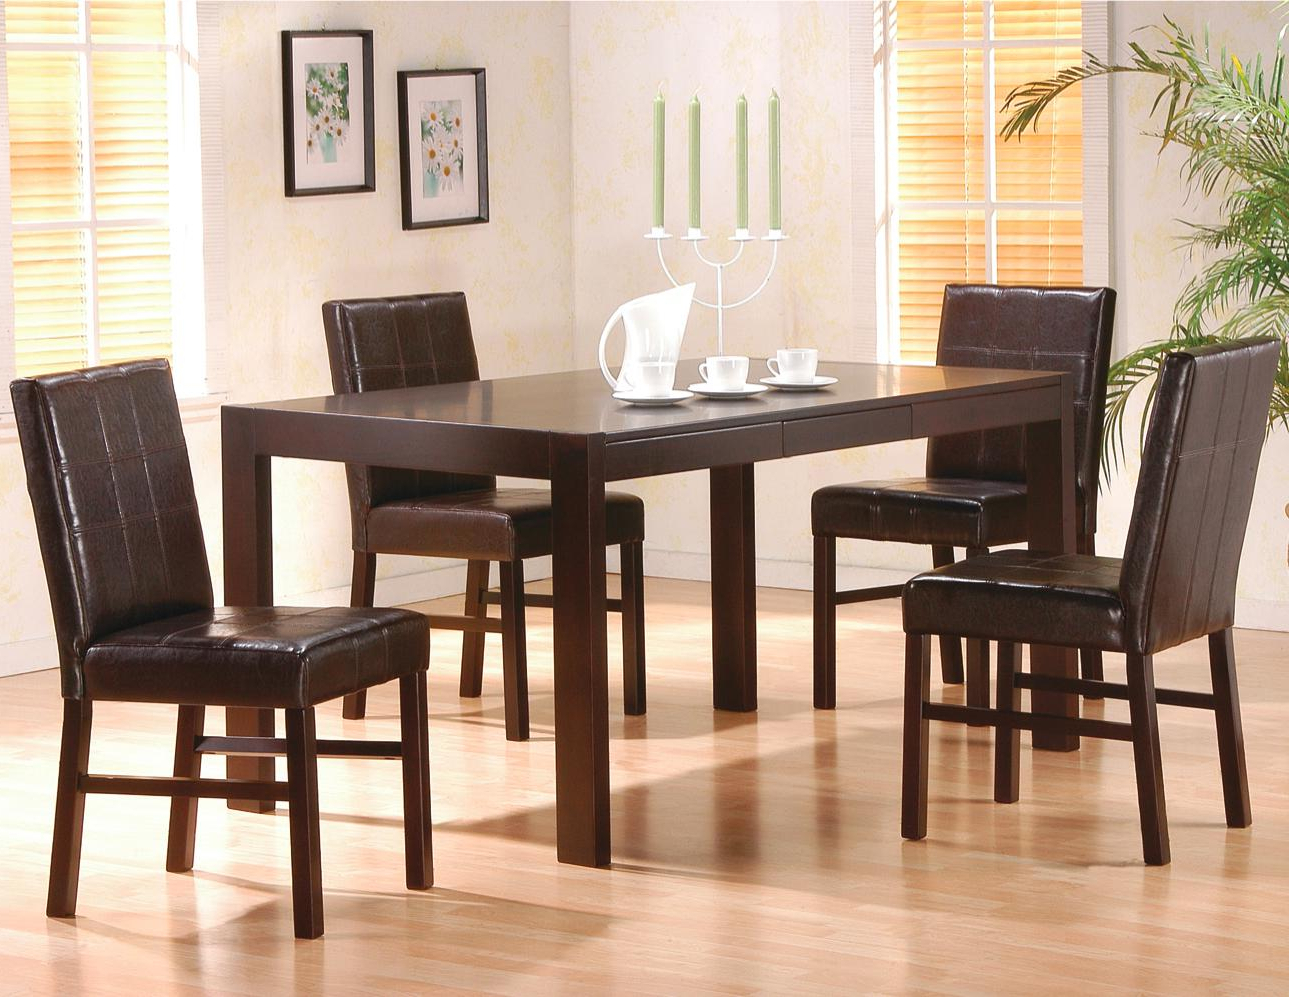 Well Liked Santa Clara Furniture Store, San Jose Furniture Store, Sunnyvale In Anette 3 Piece Counter Height Dining Sets (View 24 of 25)